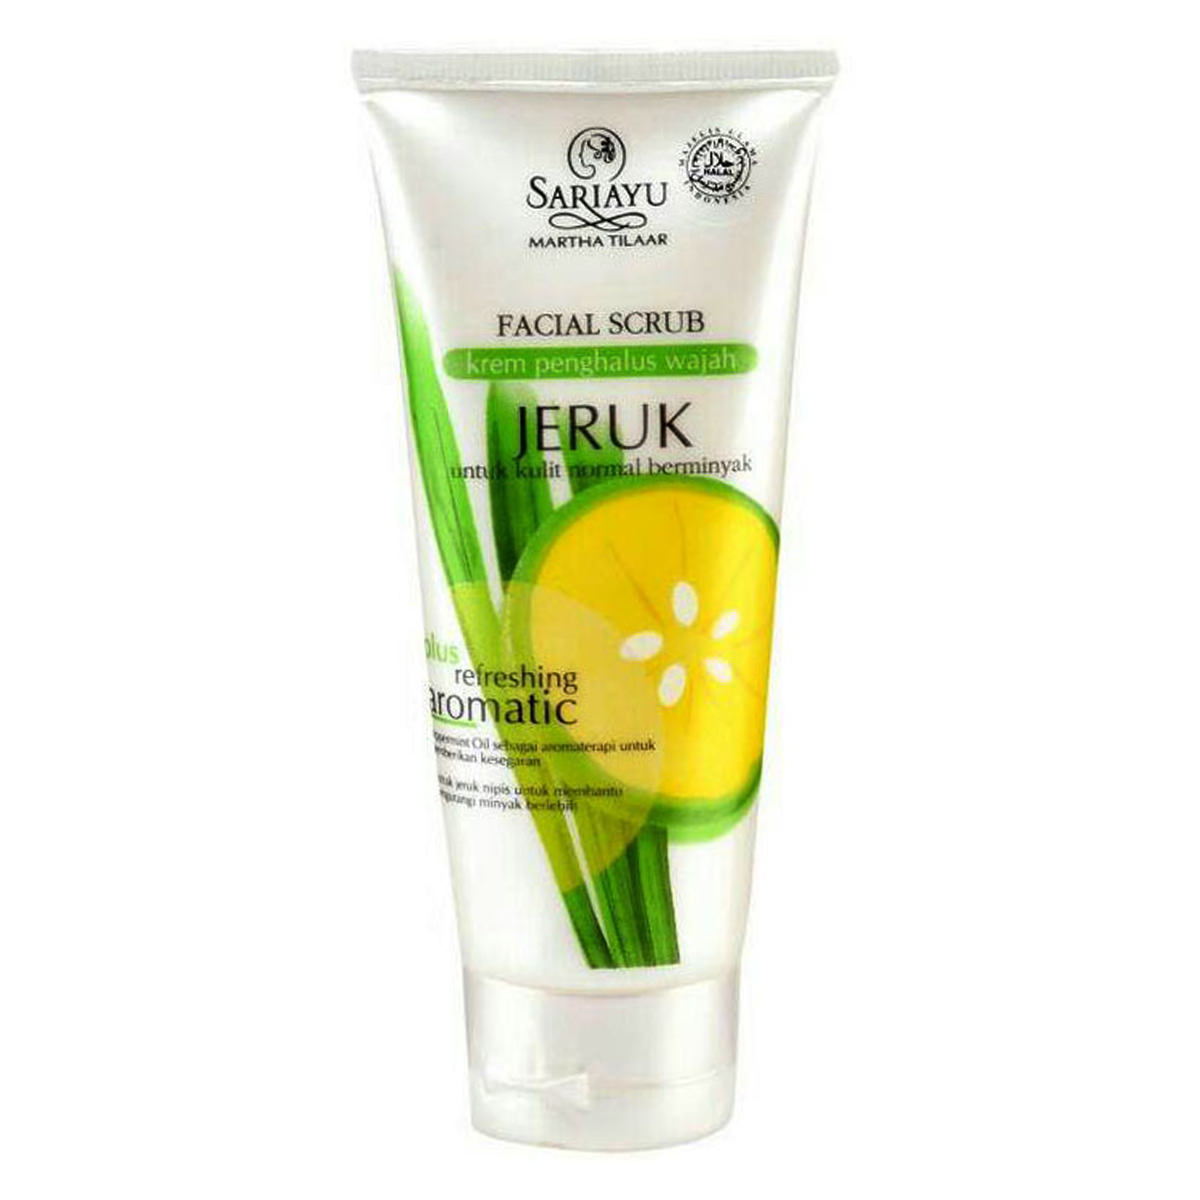 Sariayu---Facial-Scrub-Jeruk-Plus-Refreshing-Aromatic-sfw